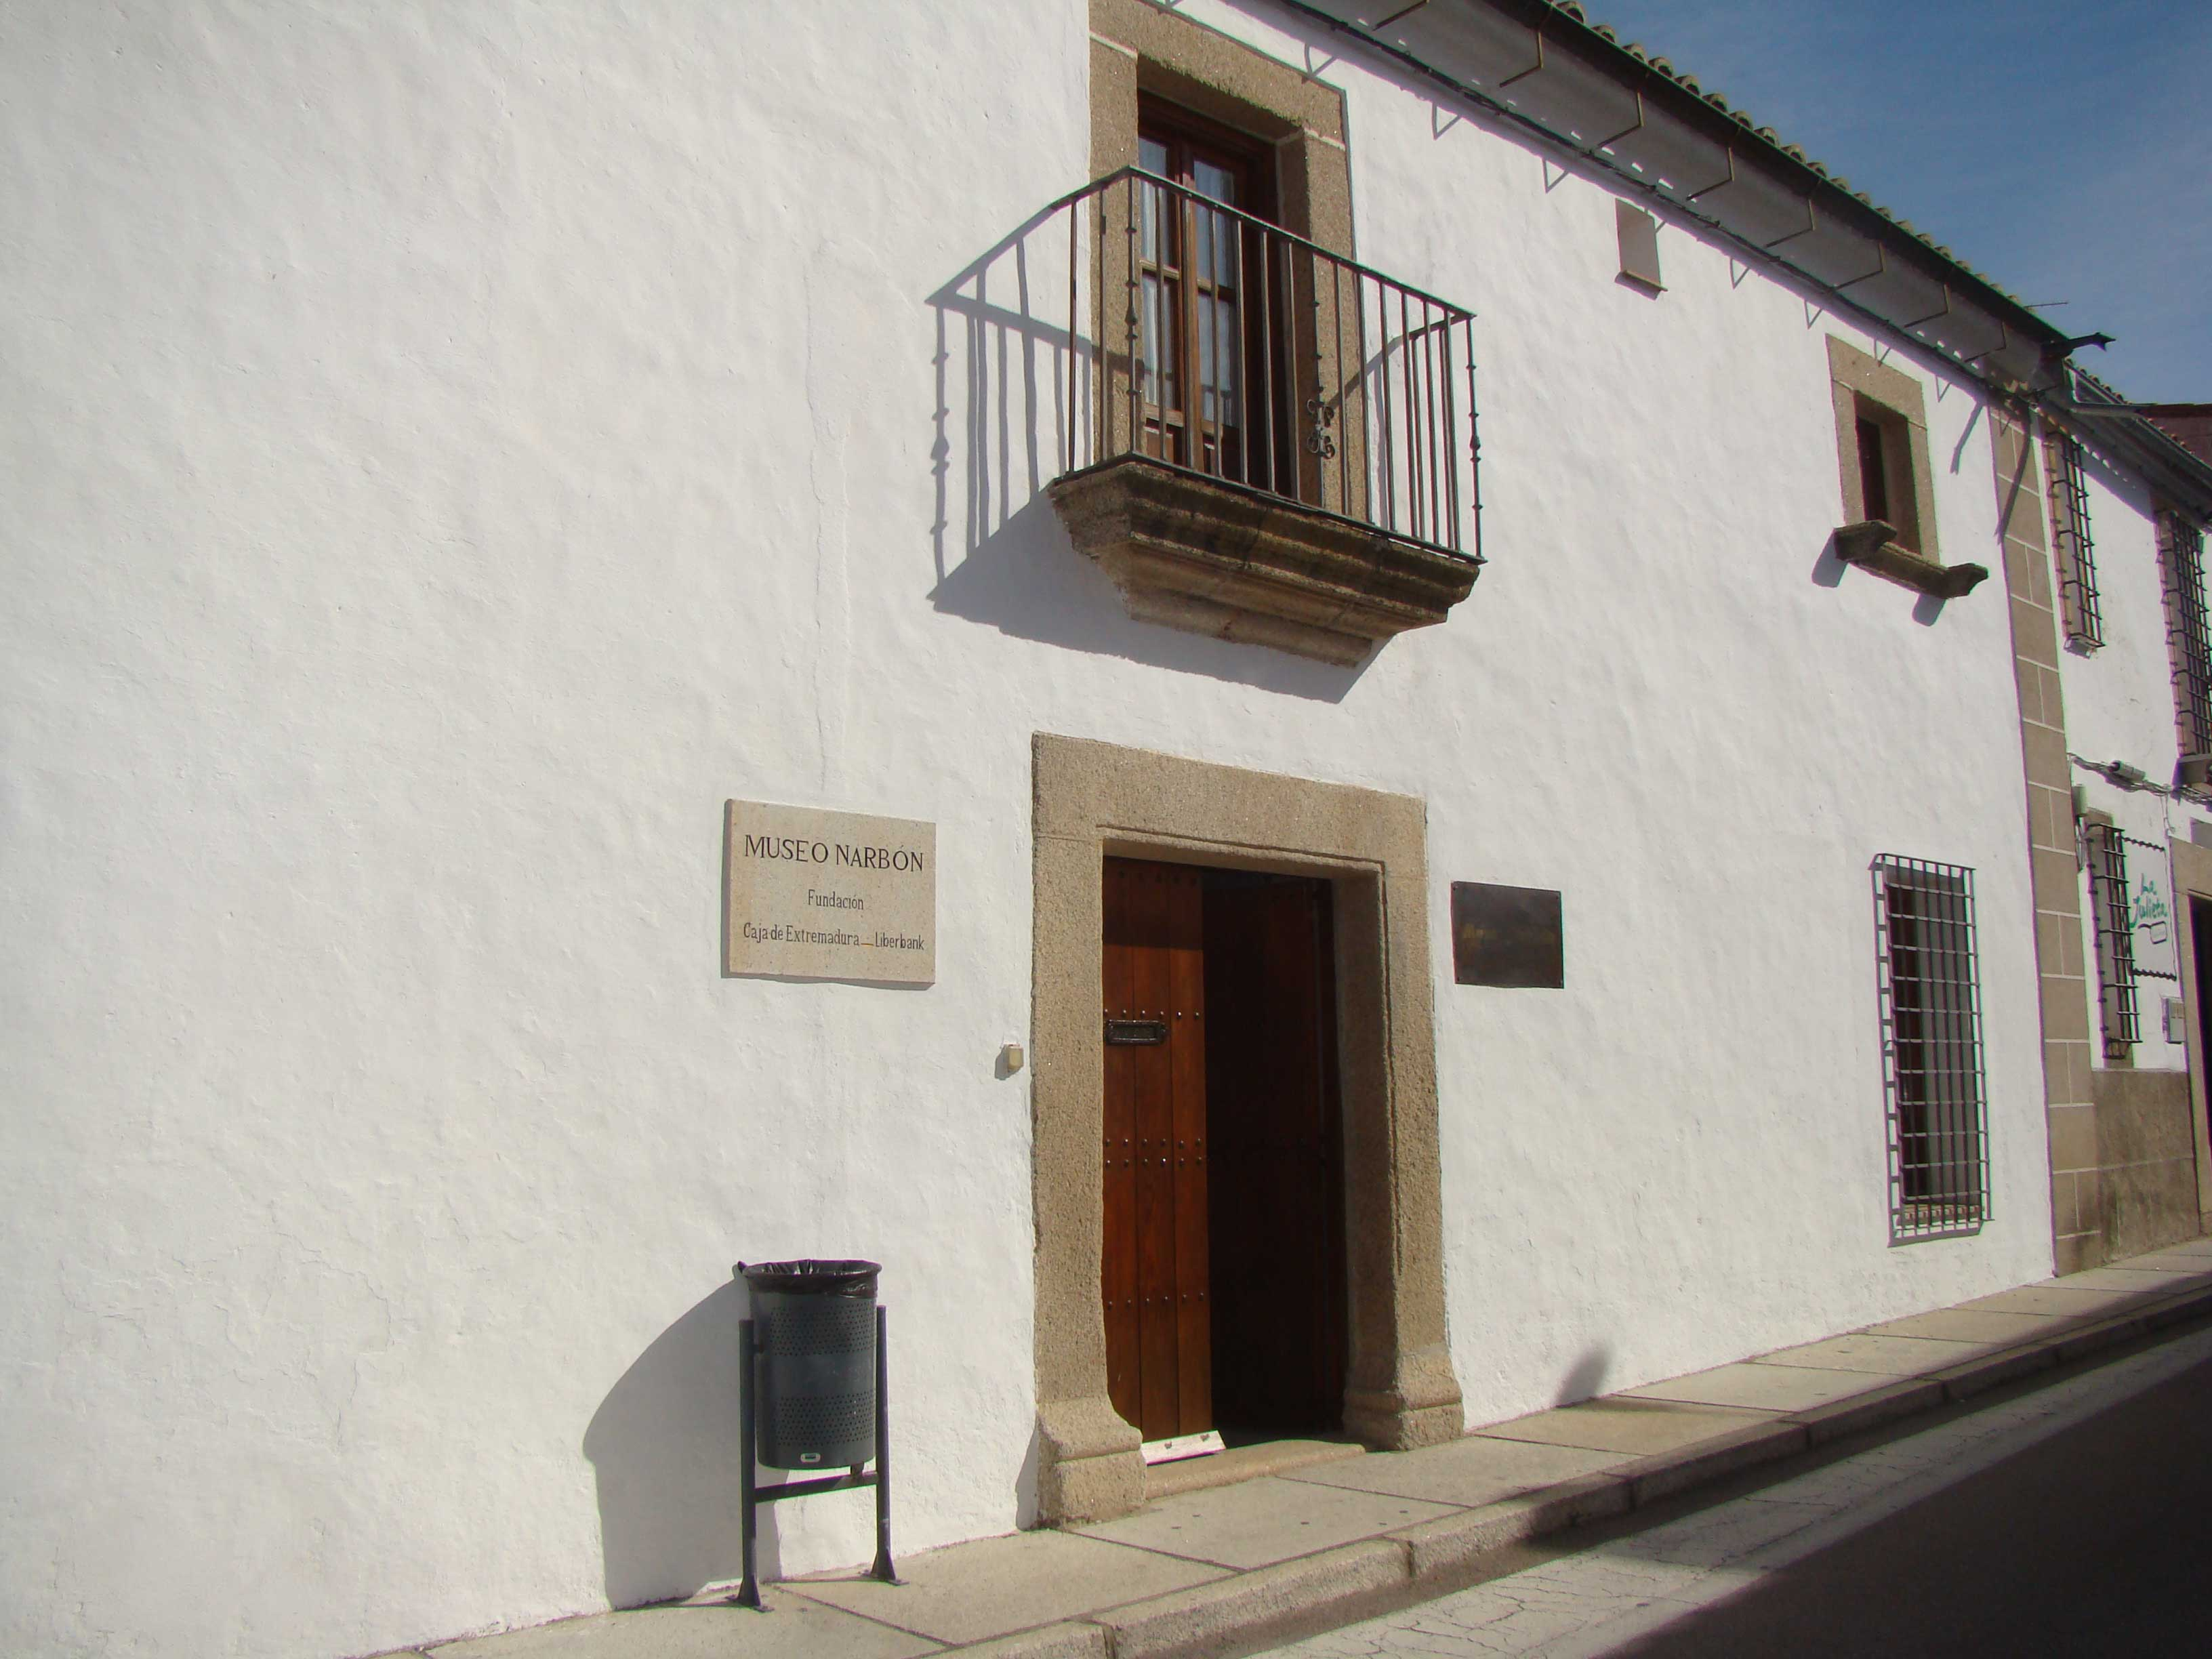 Museo Narbón